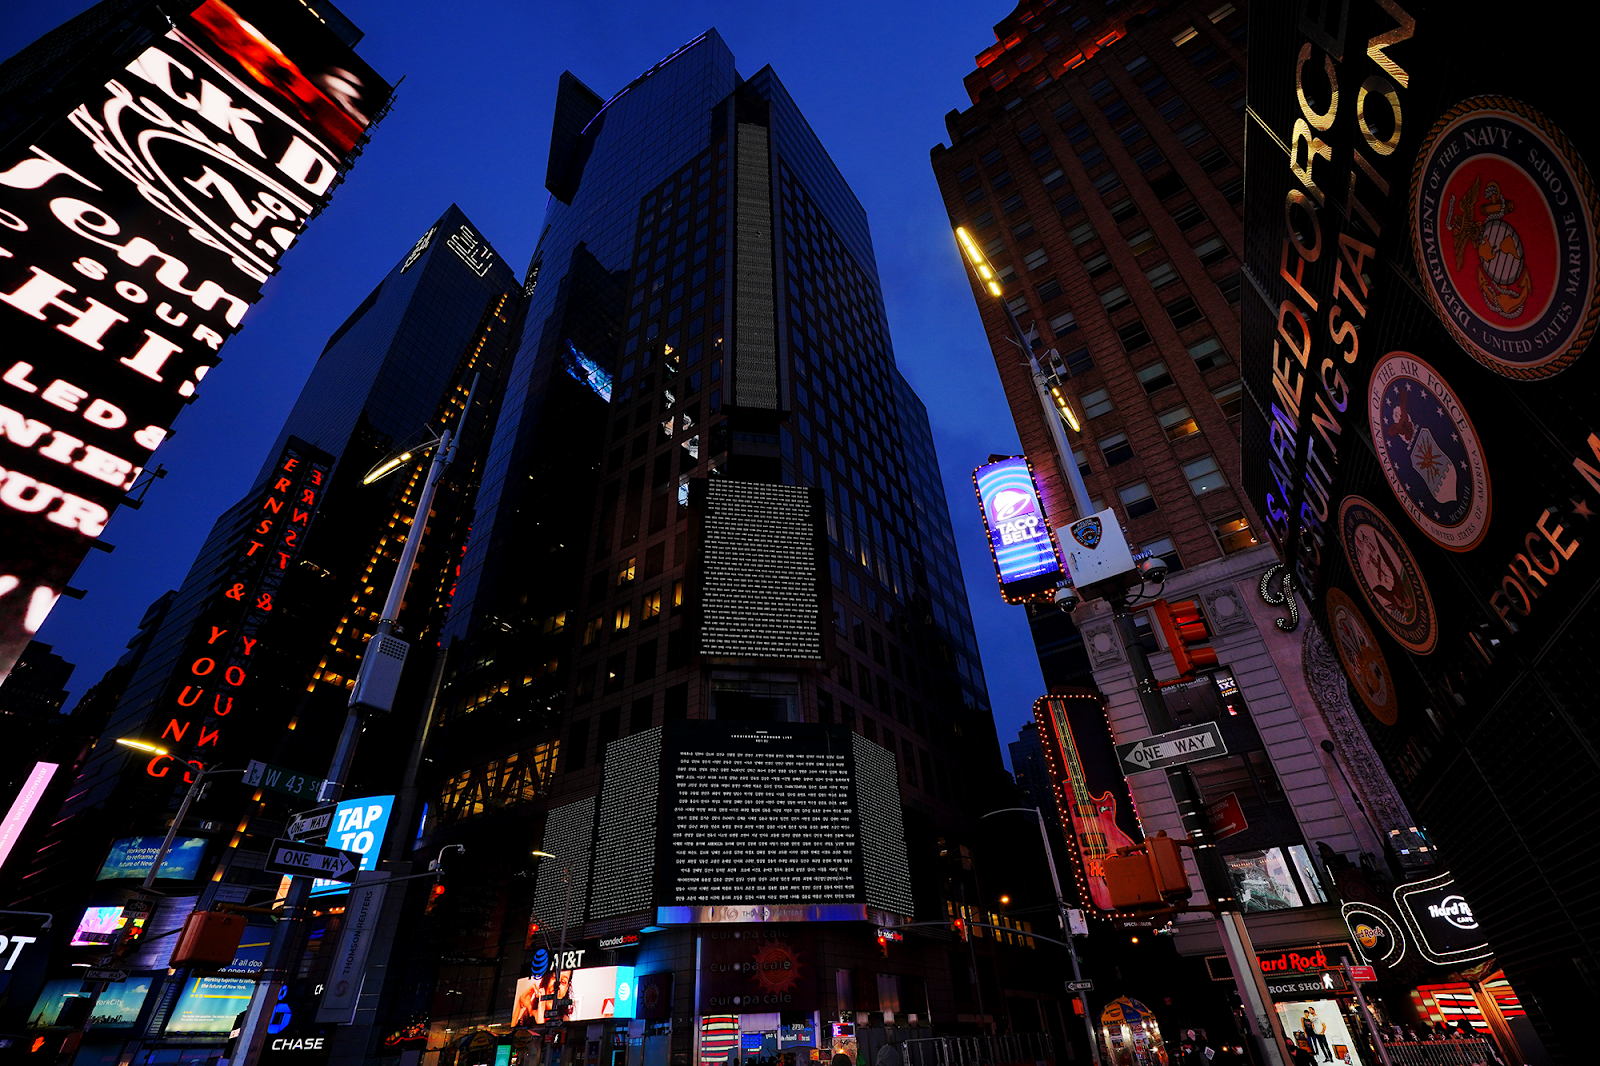 The Names of Many Koreans lit up New York Times Square 1